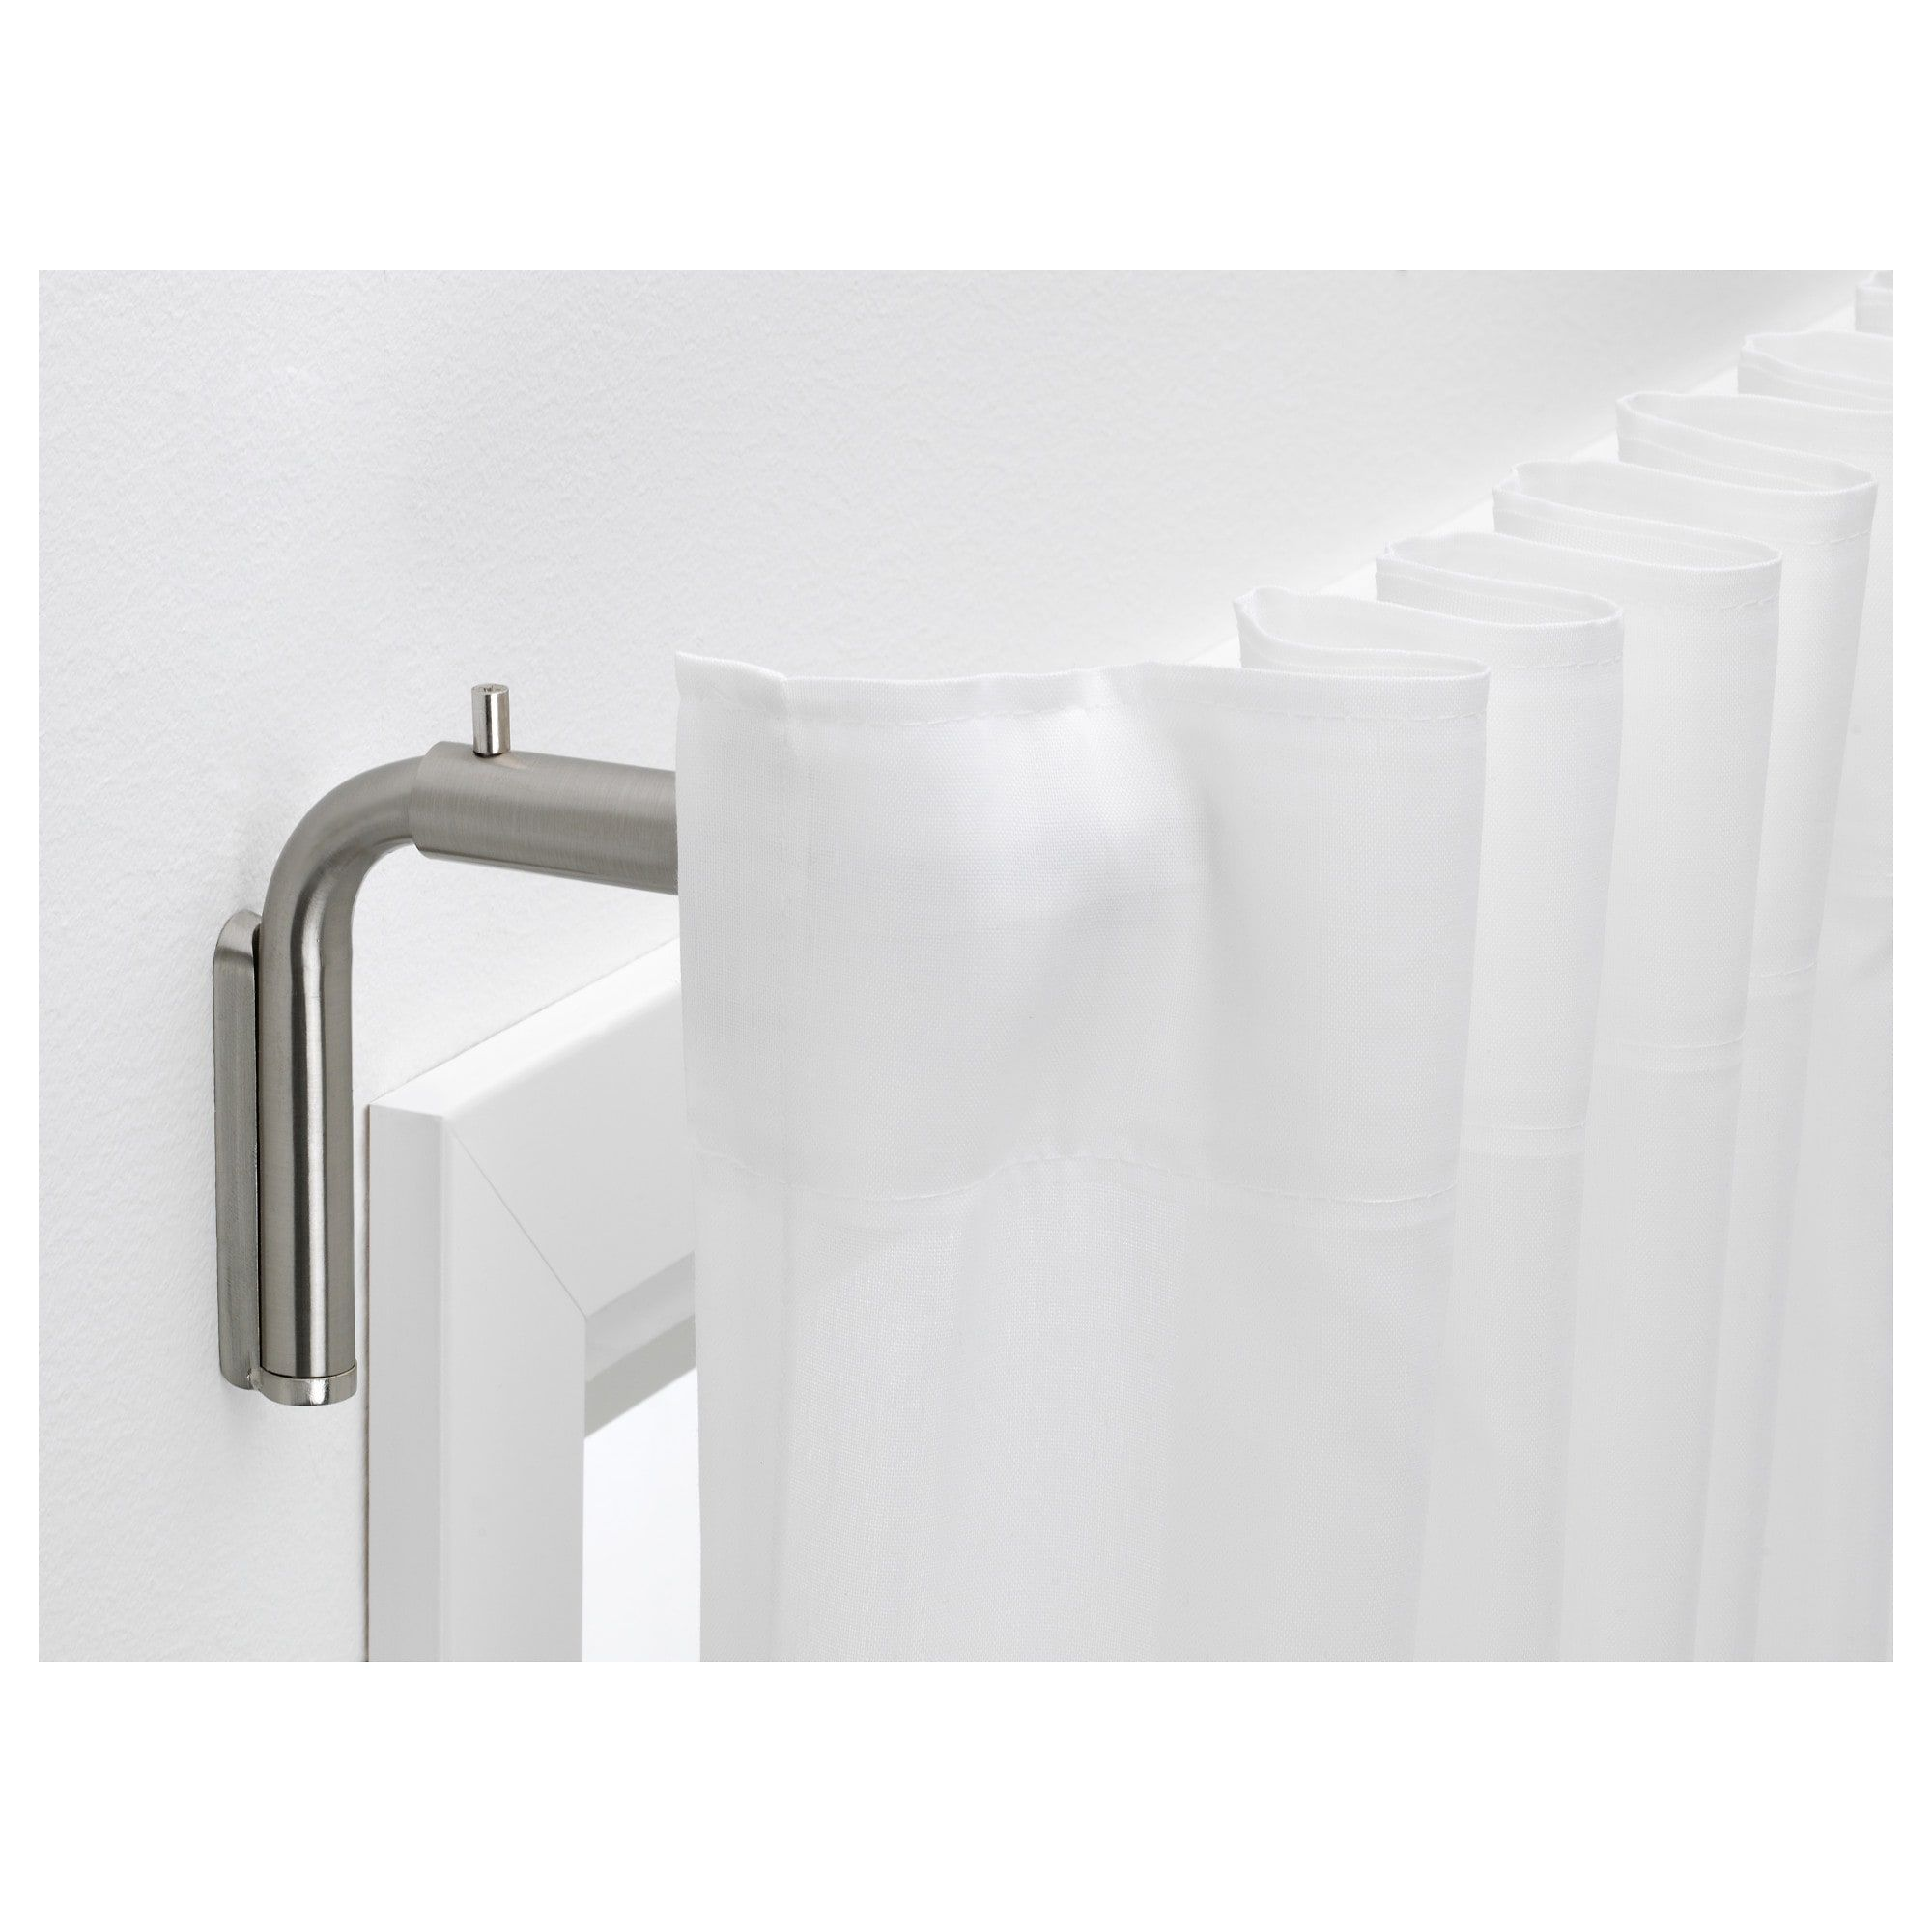 Ikea Us Furniture And Home Furnishings Curtain Rods Ikea